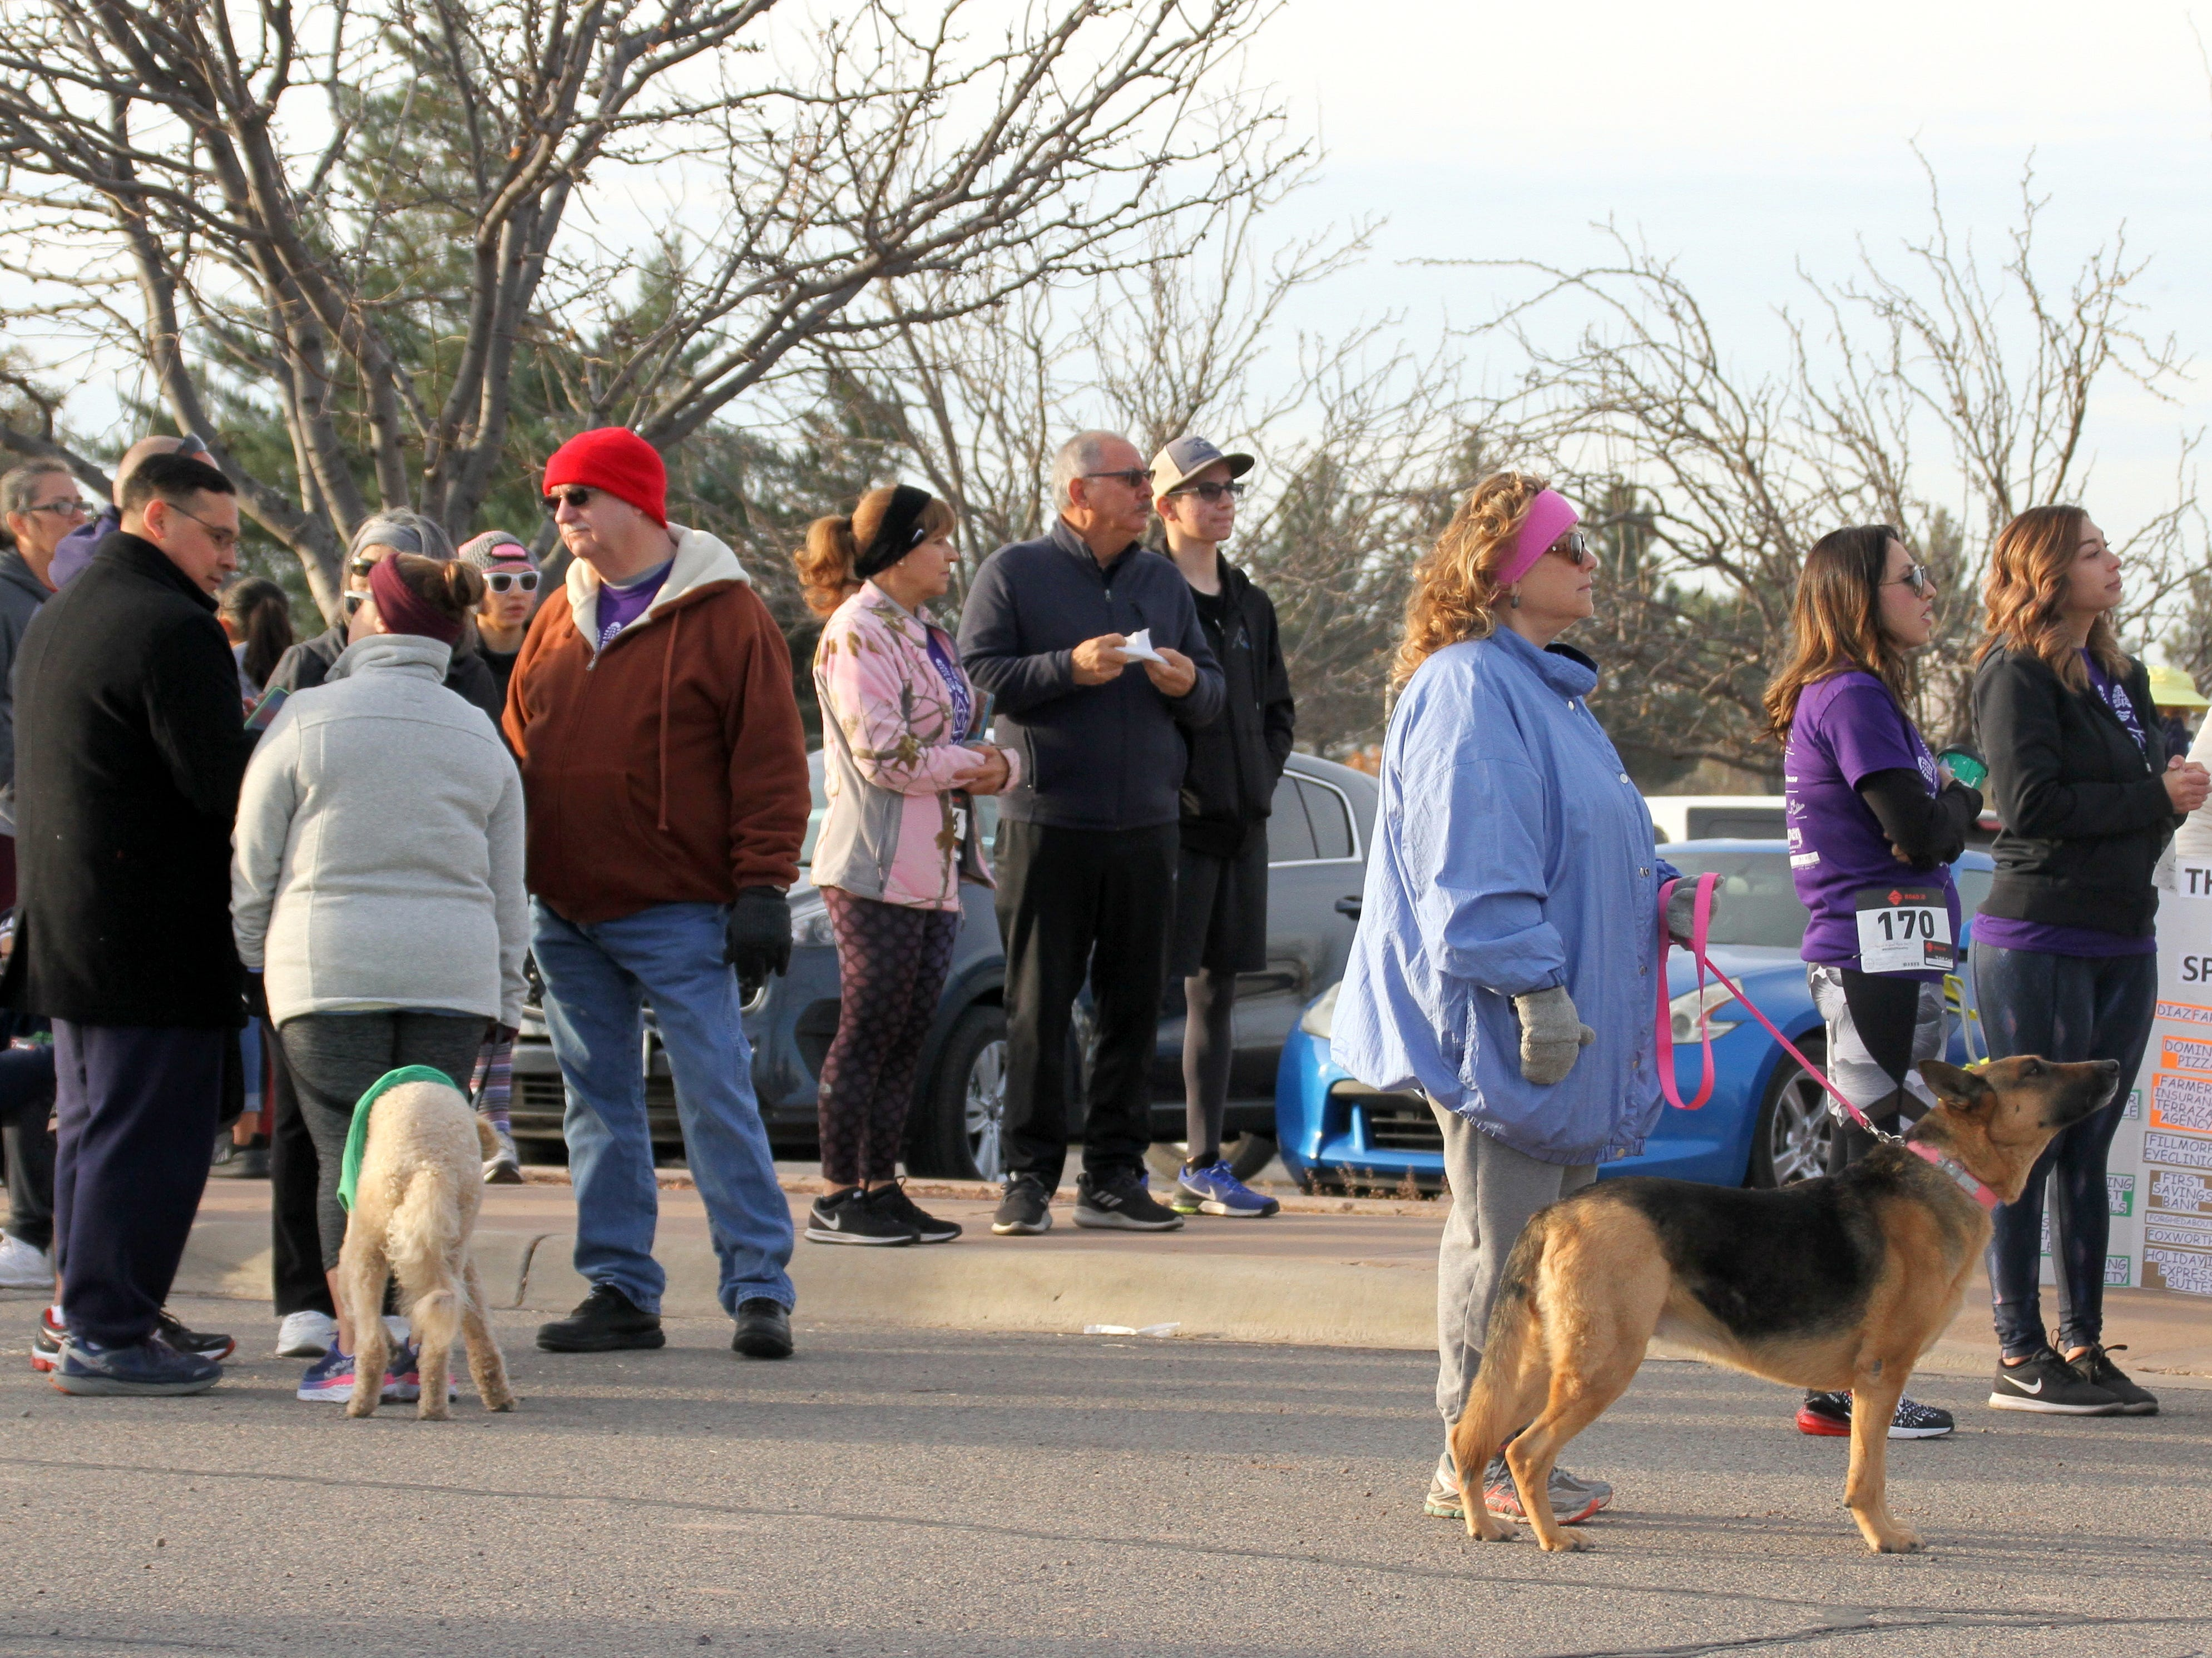 Pet owners brought their dogs for the 2-mile walk.